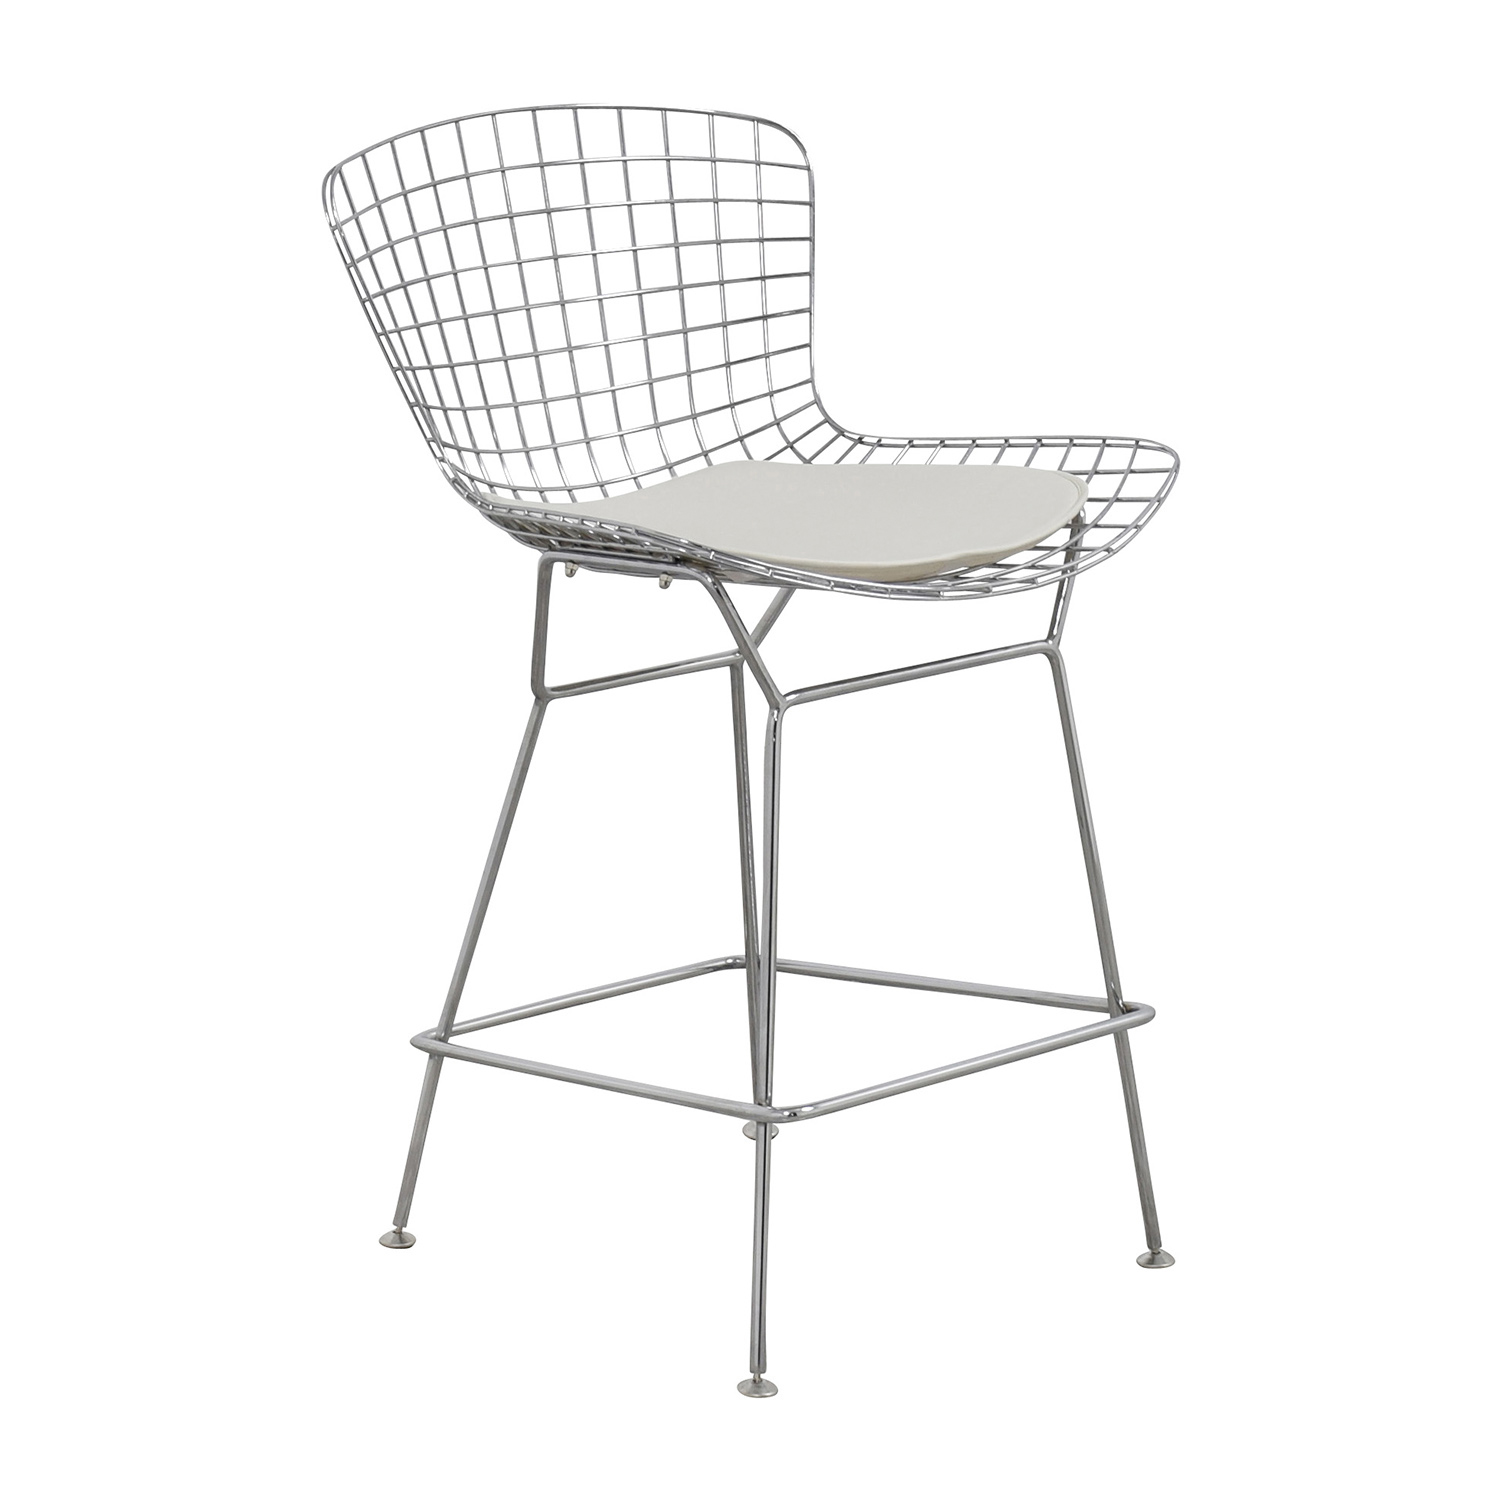 54 off inmod inmod chrome wire bertoia counter stool chairs - Bertoia wire counter stool ...